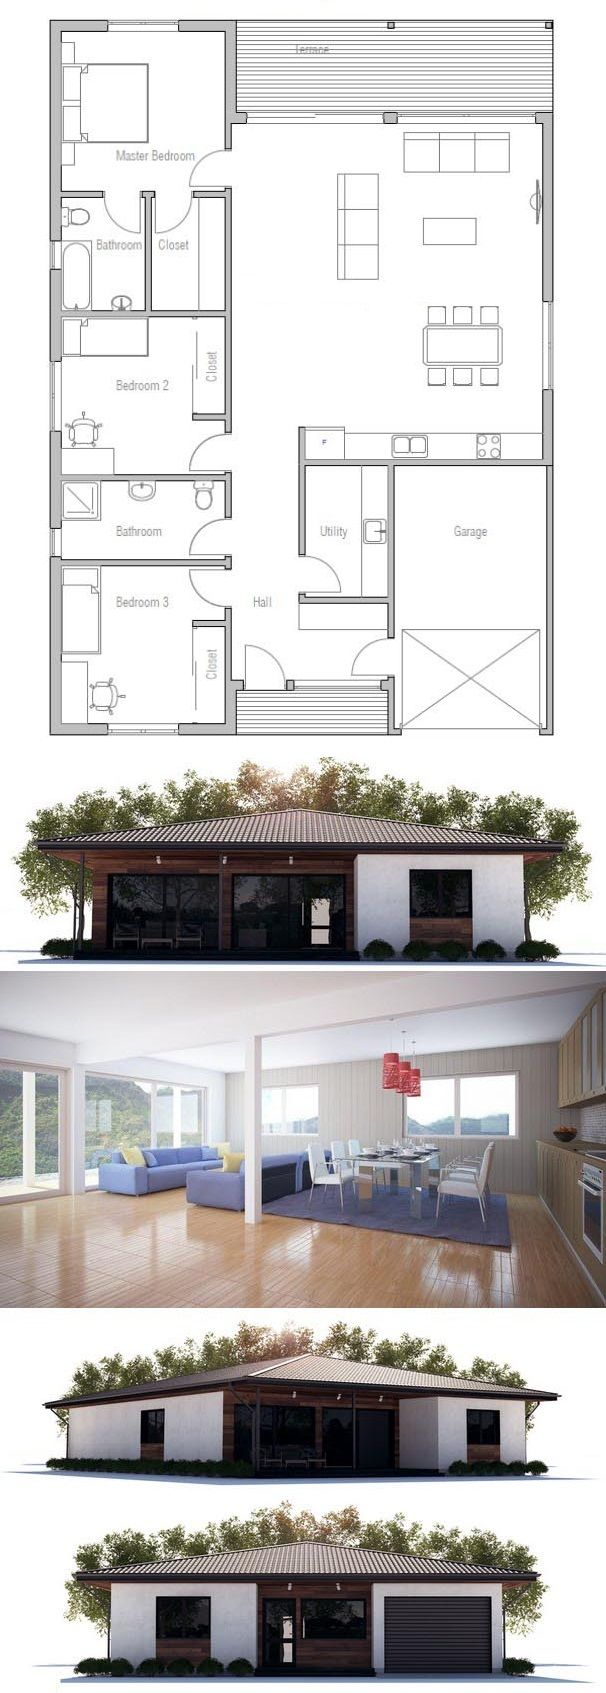 best 20 floor plan drawing ideas on pinterest architecture drawing of a house floor plan